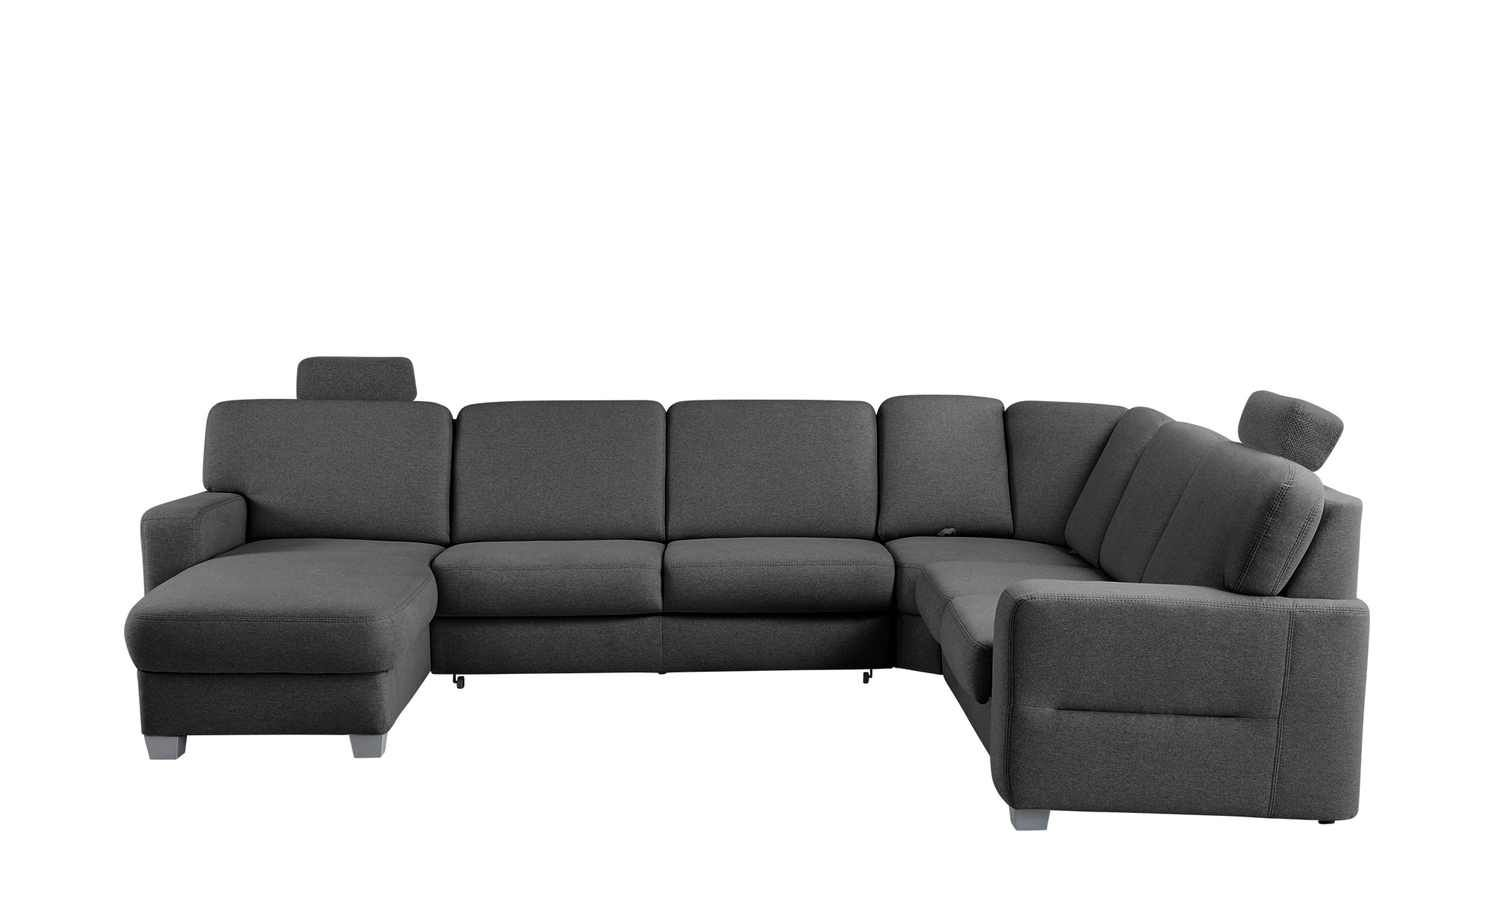 Valencia Sectional Couch Couch Home Decor